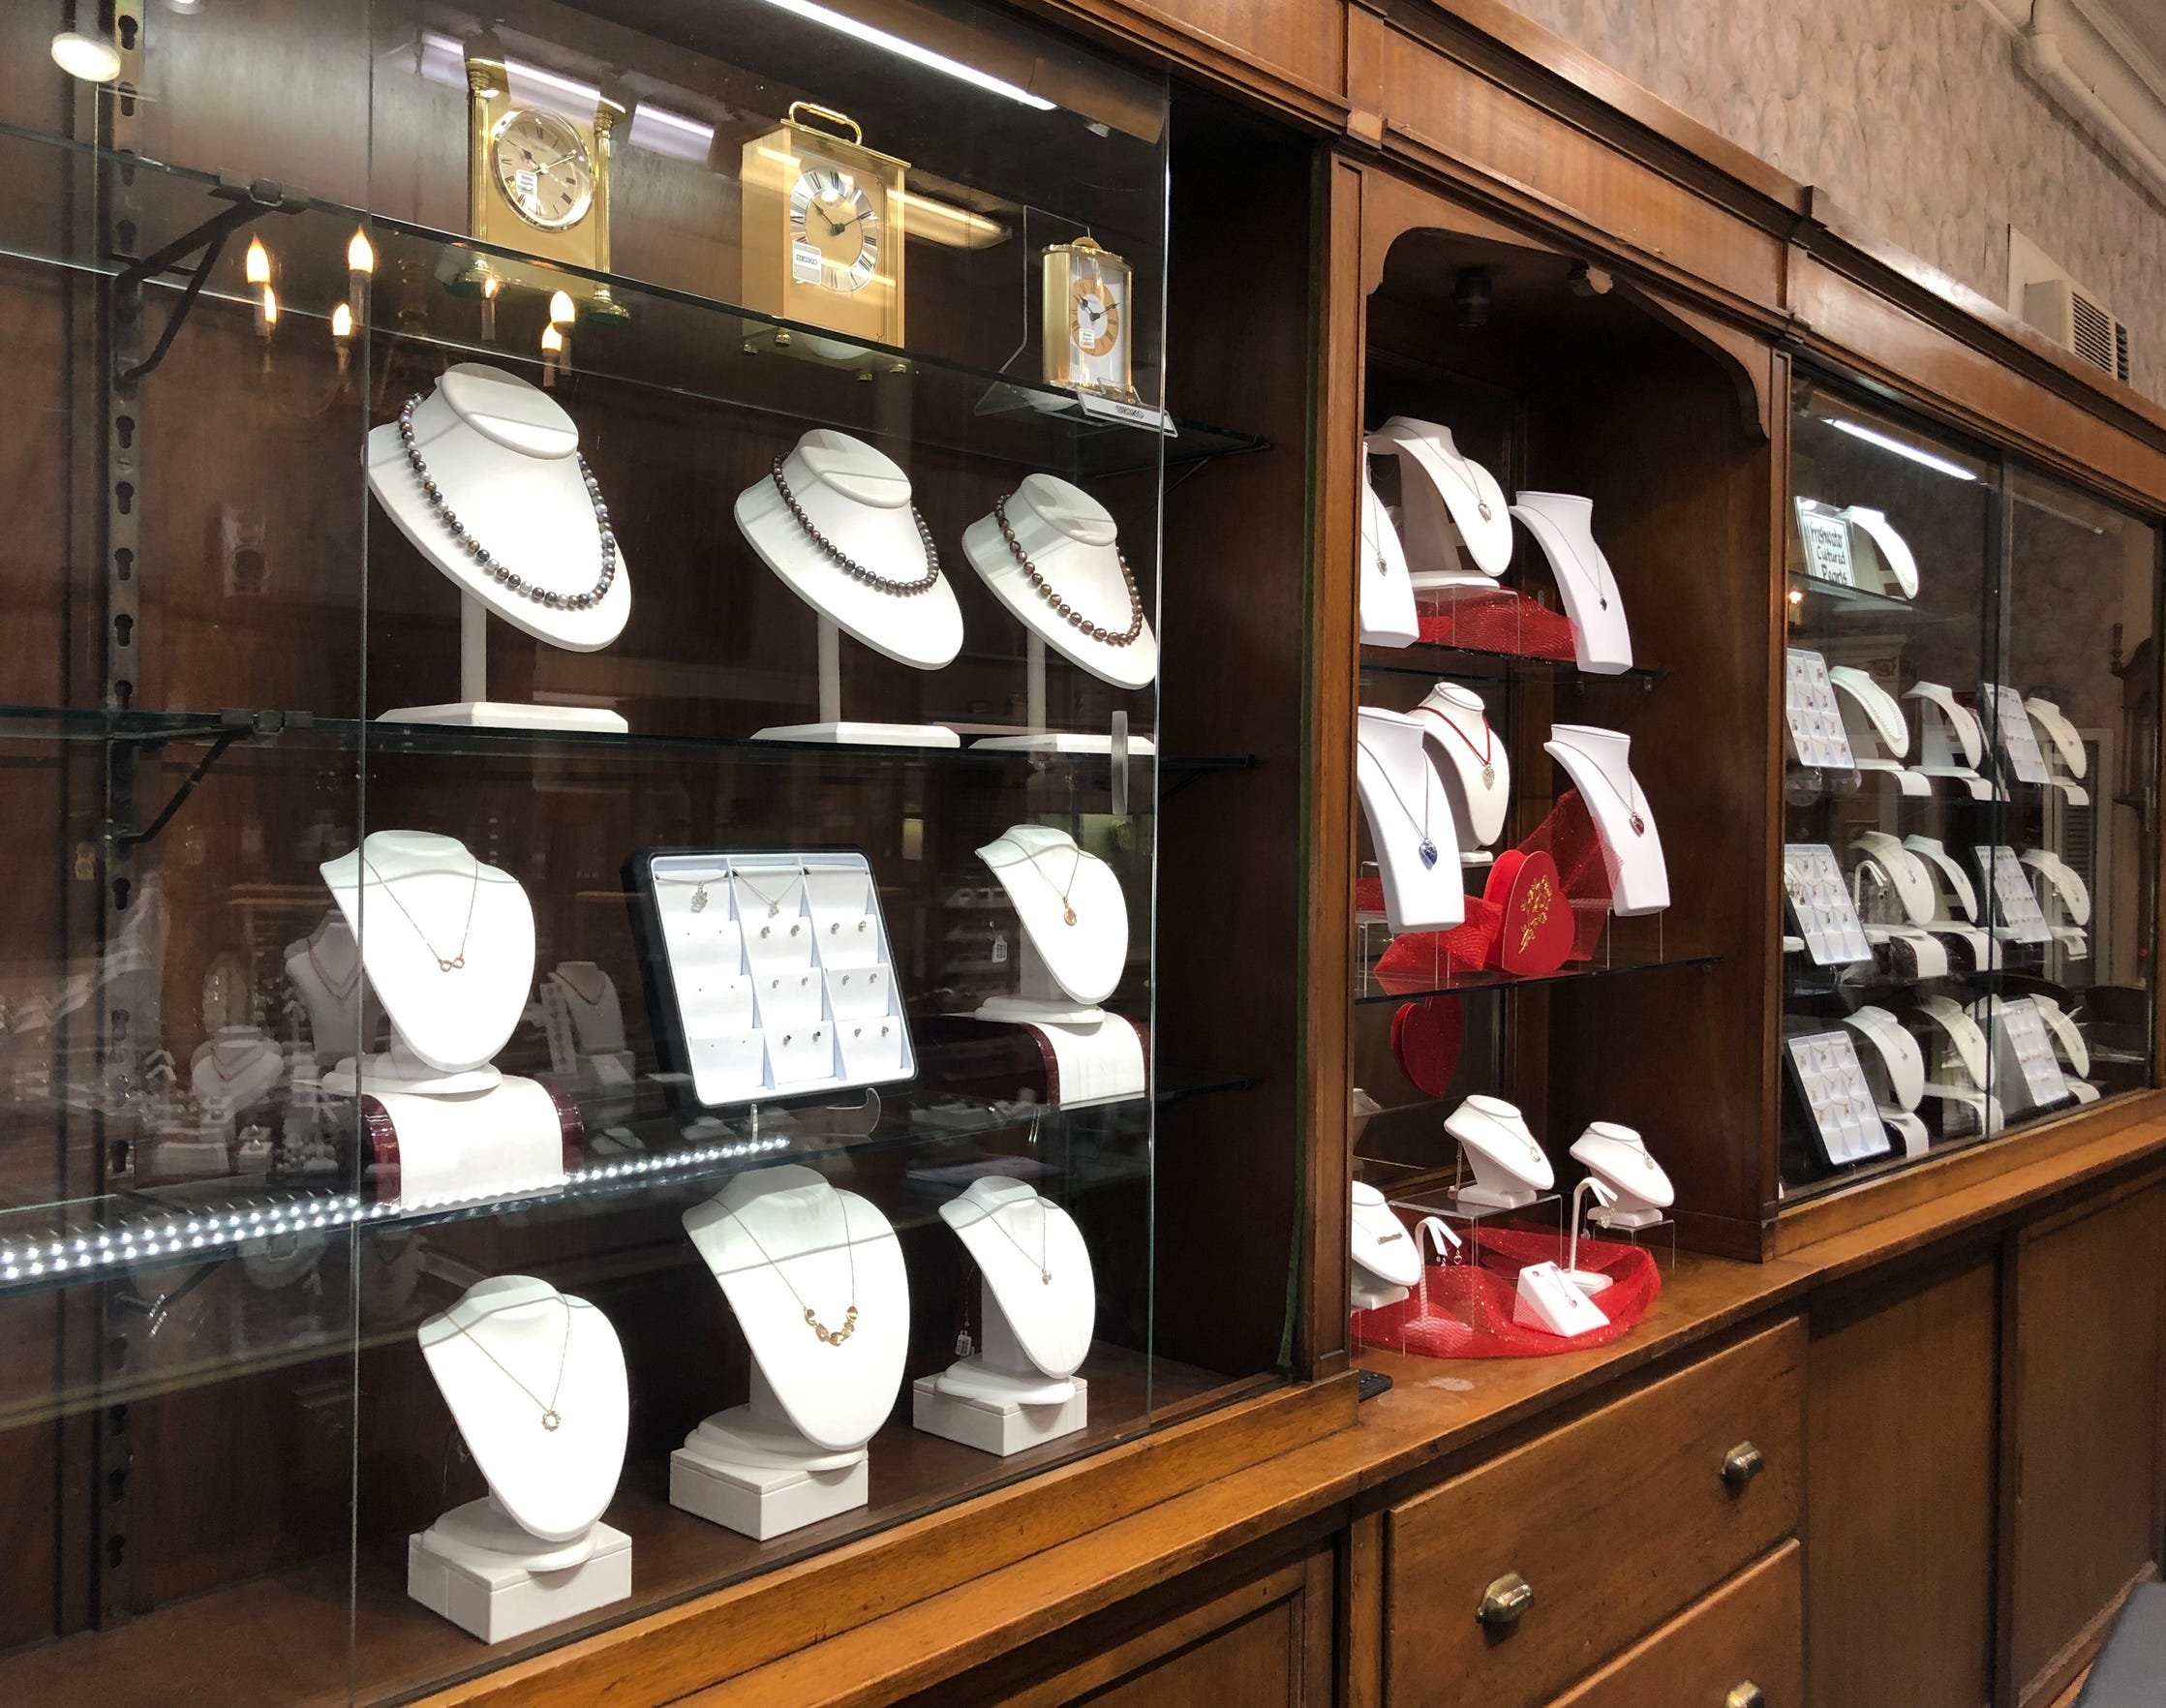 Ludwigs Jewelers in downtown Chambersburg as photographed on Wednesday, Jan. 16, 2019. Today, the store on South Main Street still uses the same cases to display the jewelry that it did when it first opened at its second location in 1902.